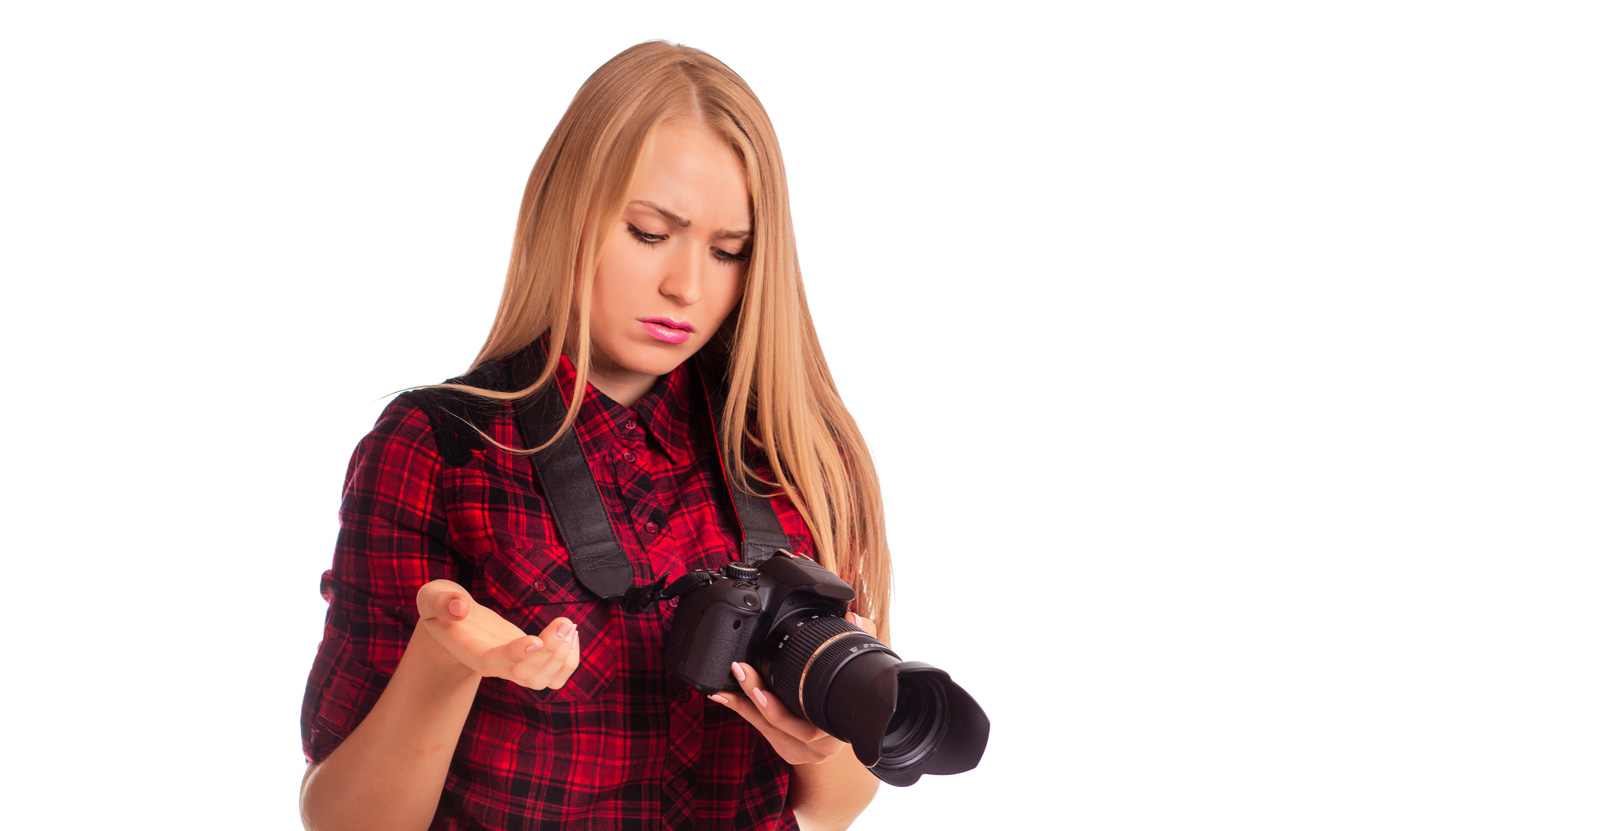 Female-Photographer-Having-Trouble-With-Camera